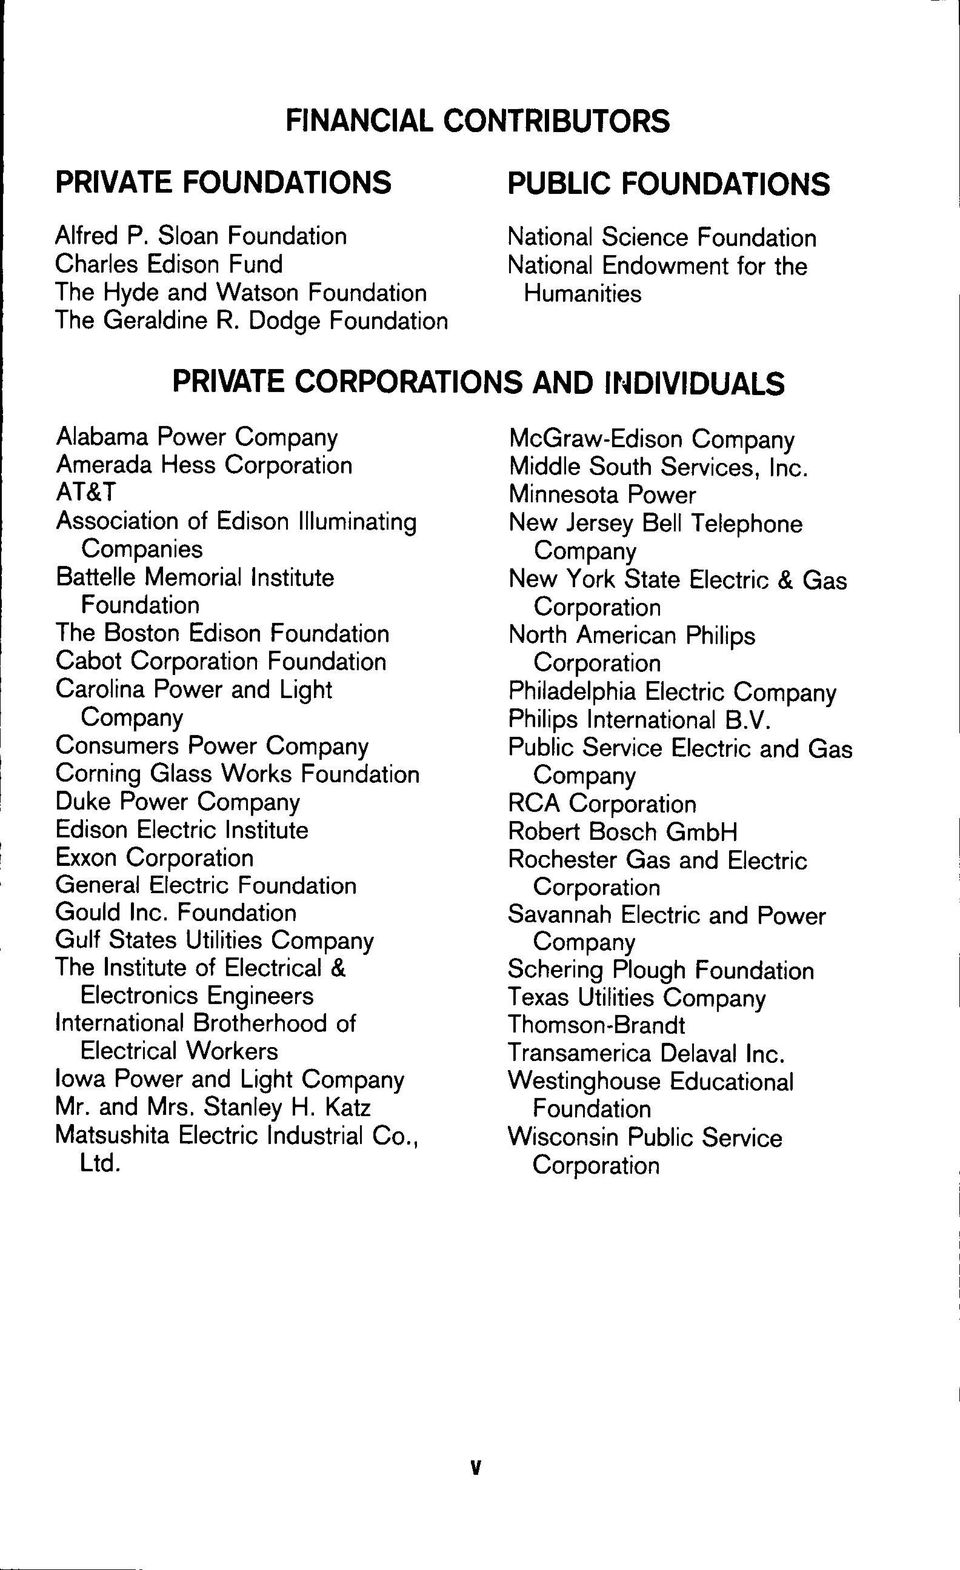 Association of Edison Illuminating Companies Battelle Memorial Institute Foundation The Boston Edison Foundation Cabot Corporation Foundation Carolina Power and Light Company Consumers Power Company